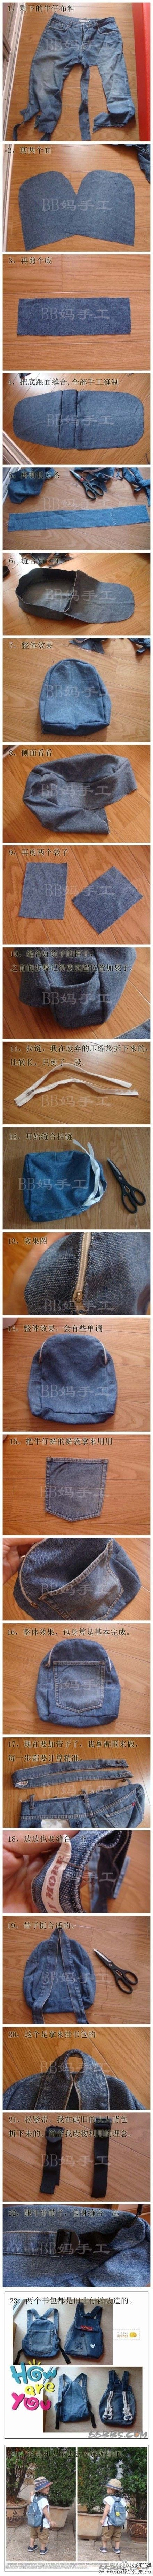 New use for old jeans!